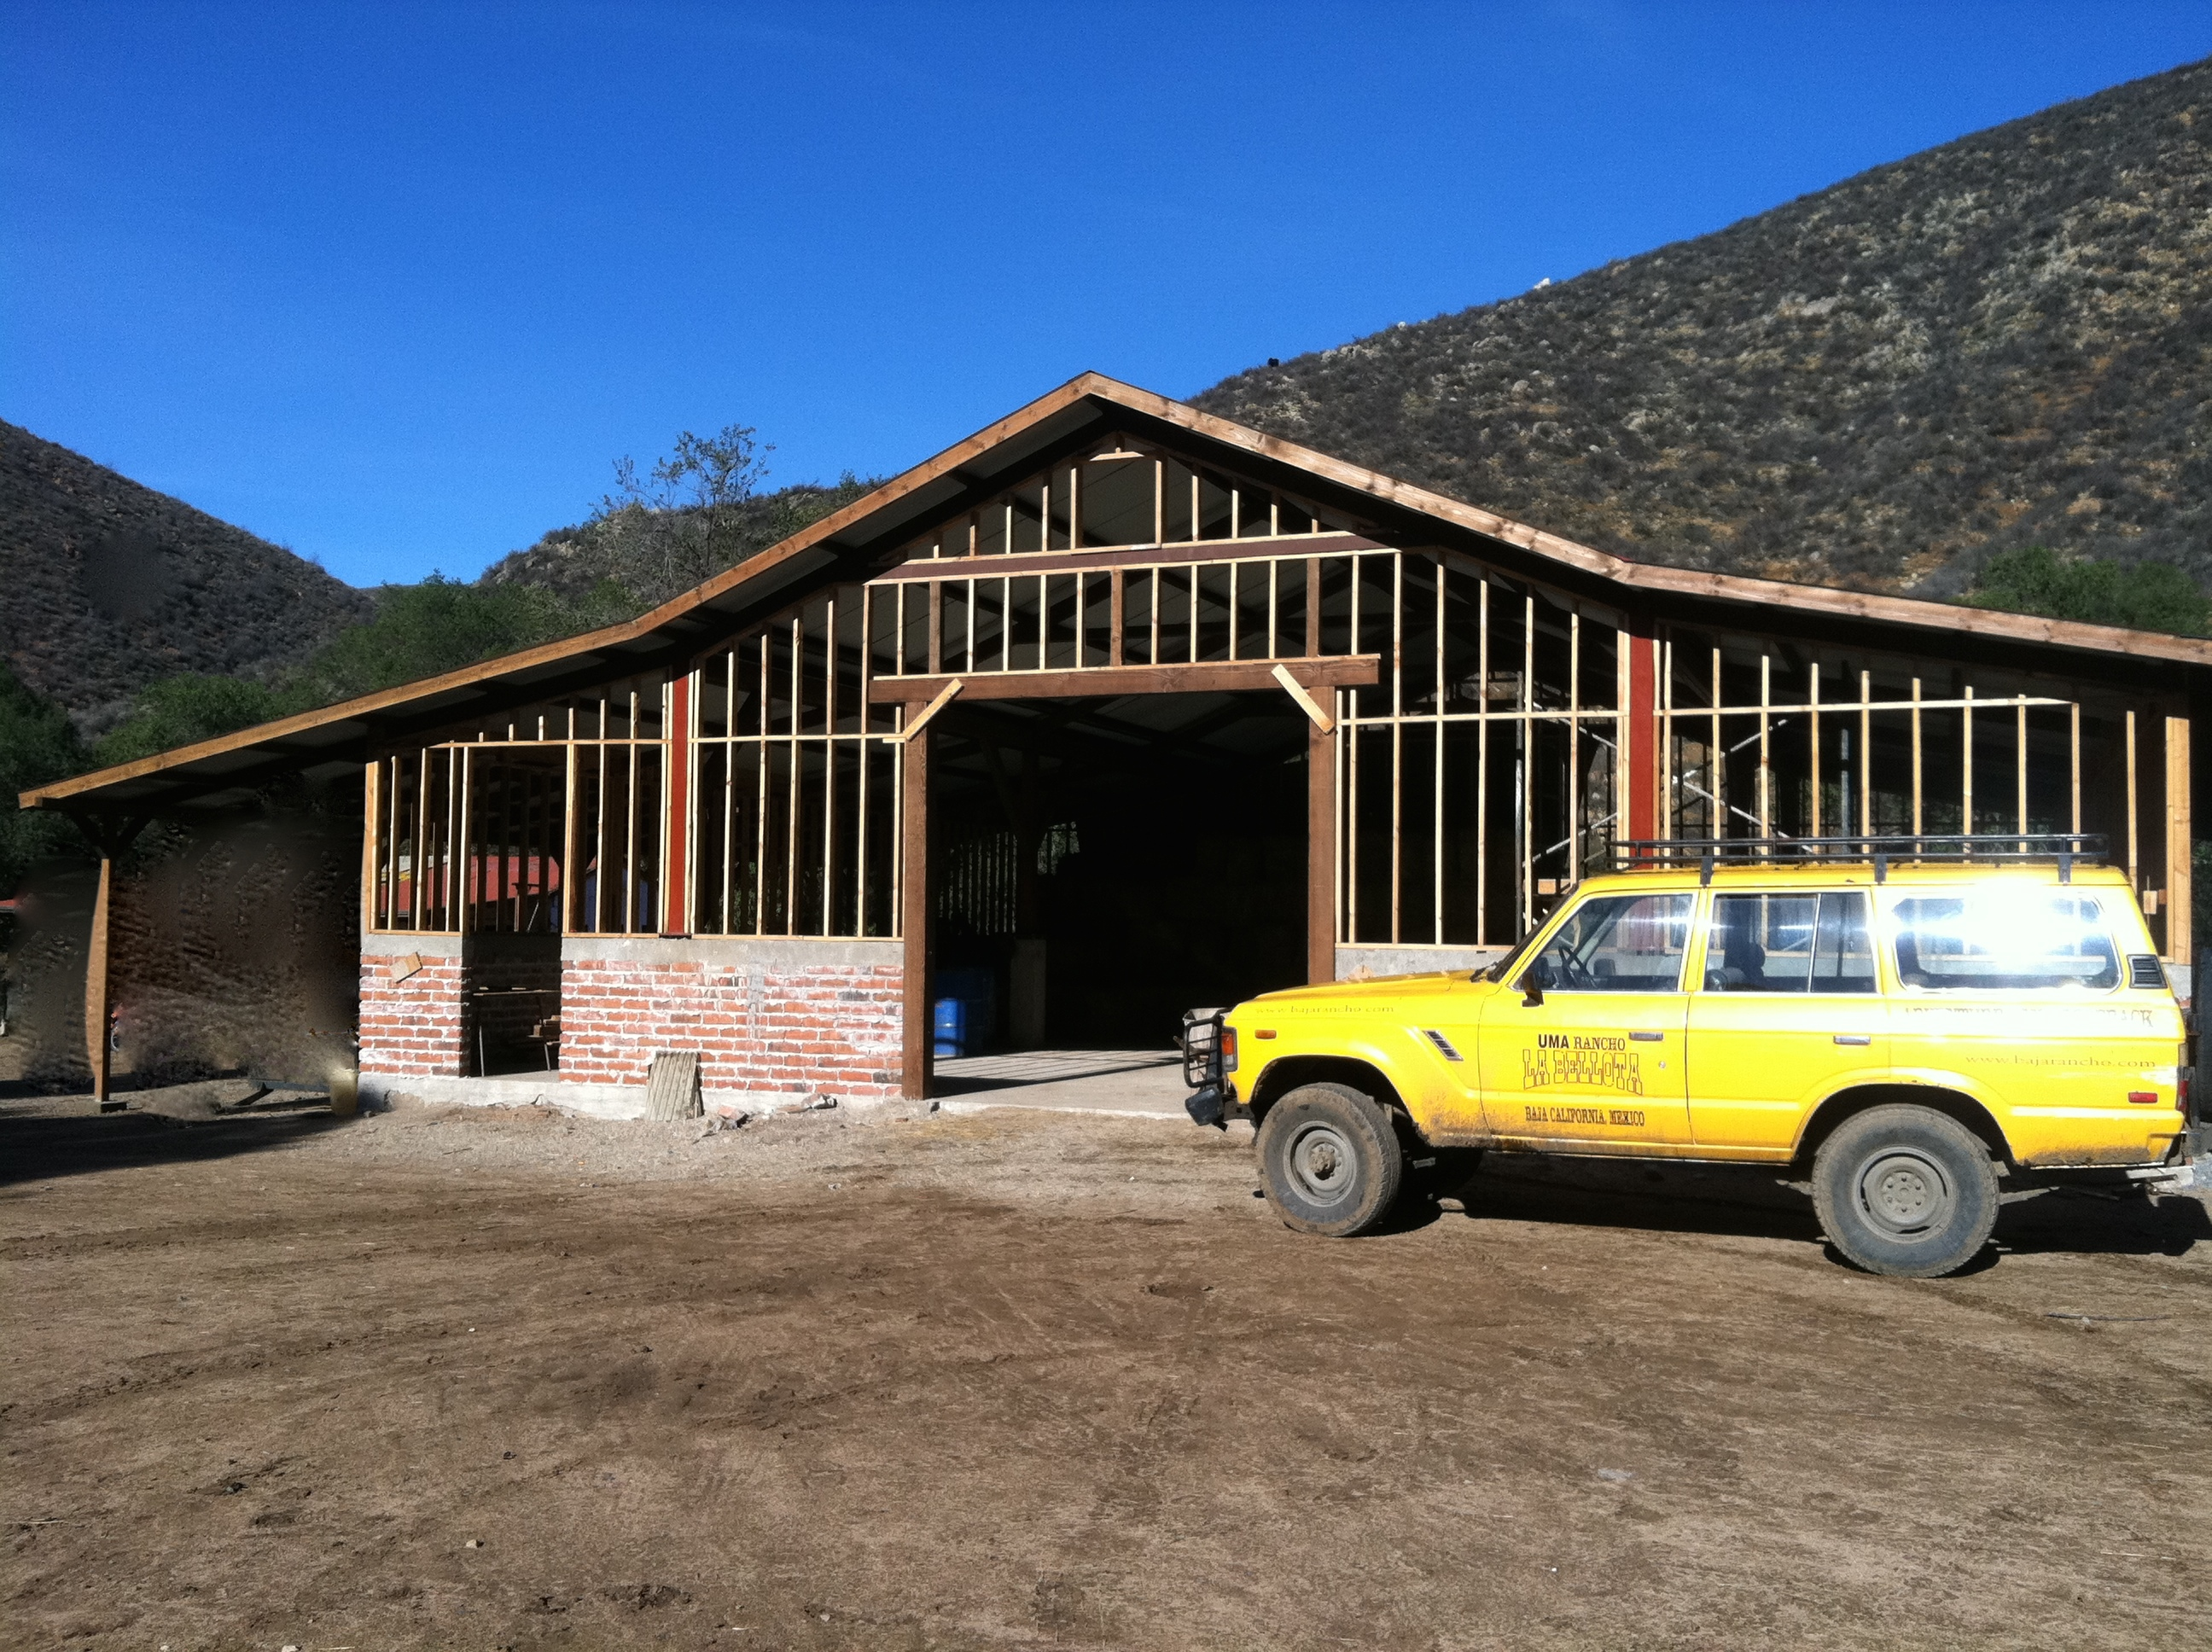 Raul is building a barn here is a photo taken last december of